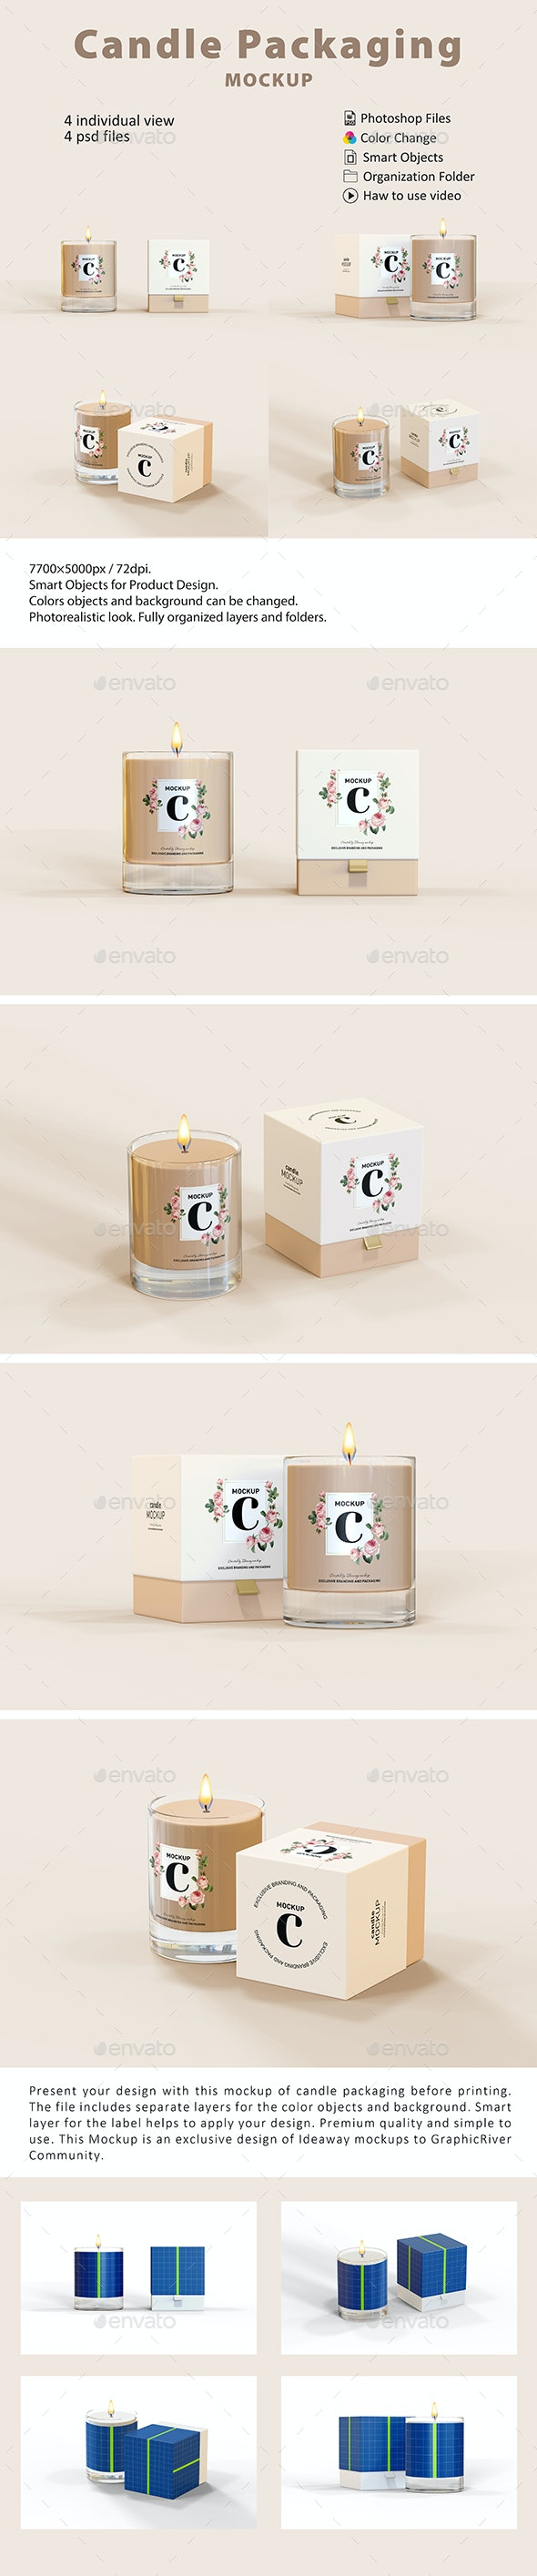 Candle Packaging Mockup - Beauty Packaging